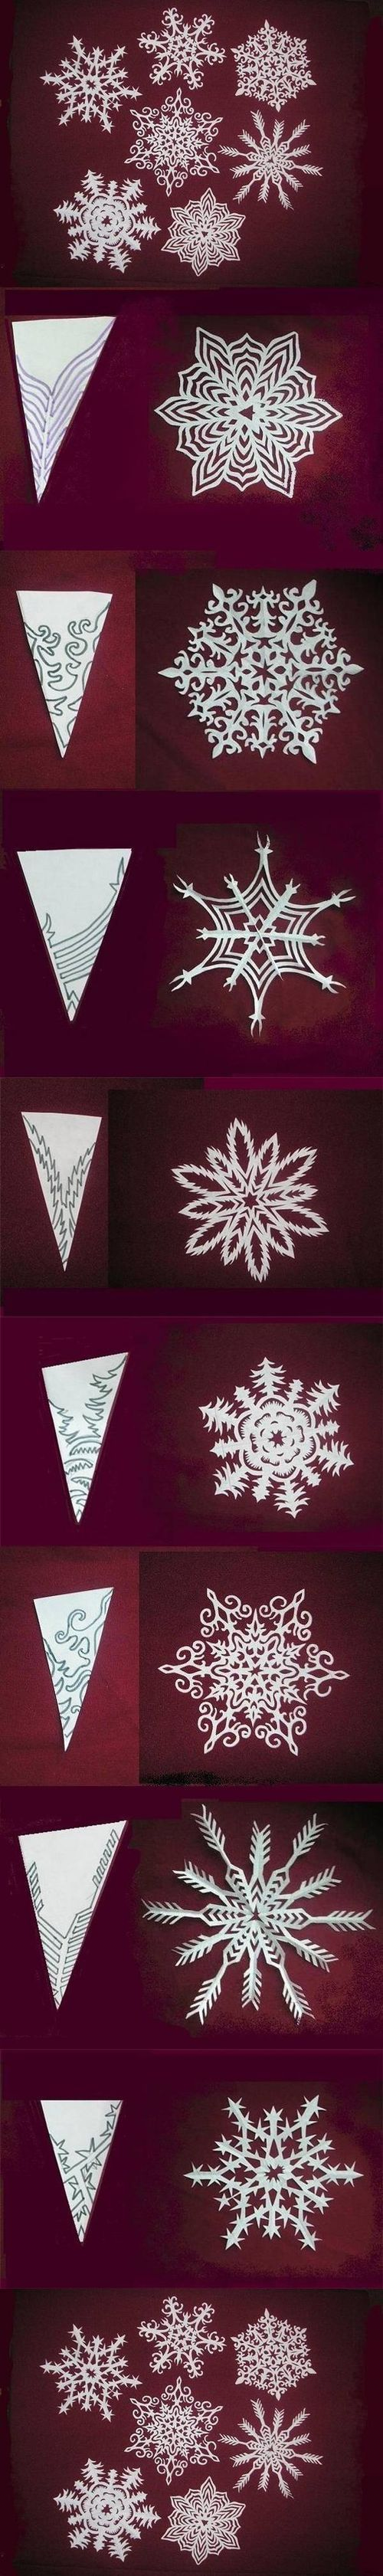 DIY Snowflakes Paper Pattern Tutorial on imgfave